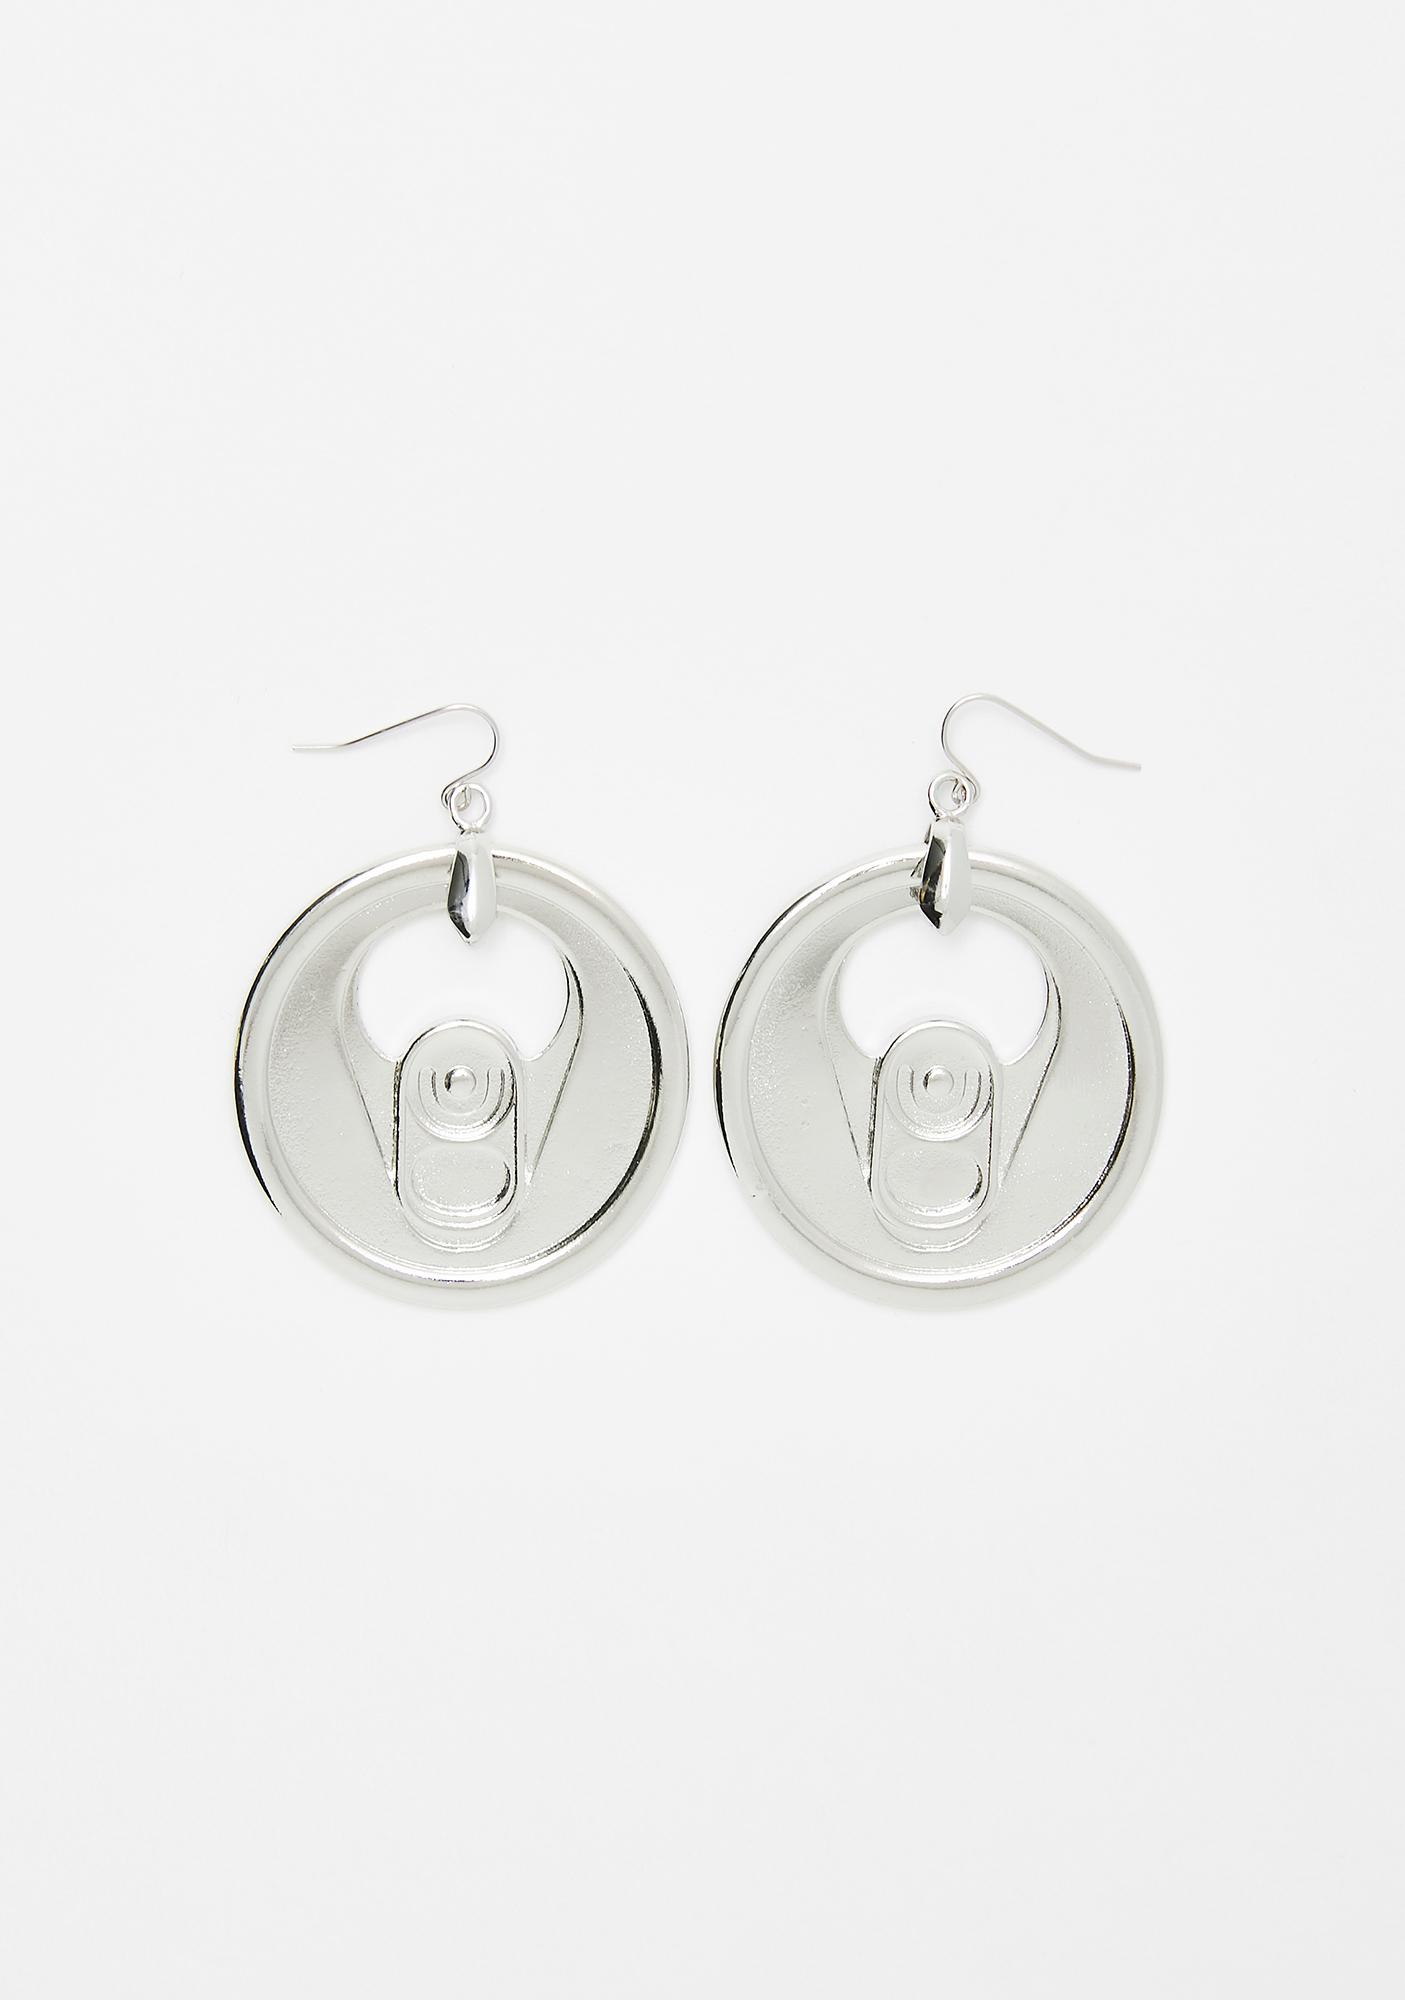 Thirsty Much Soda Can Earrings